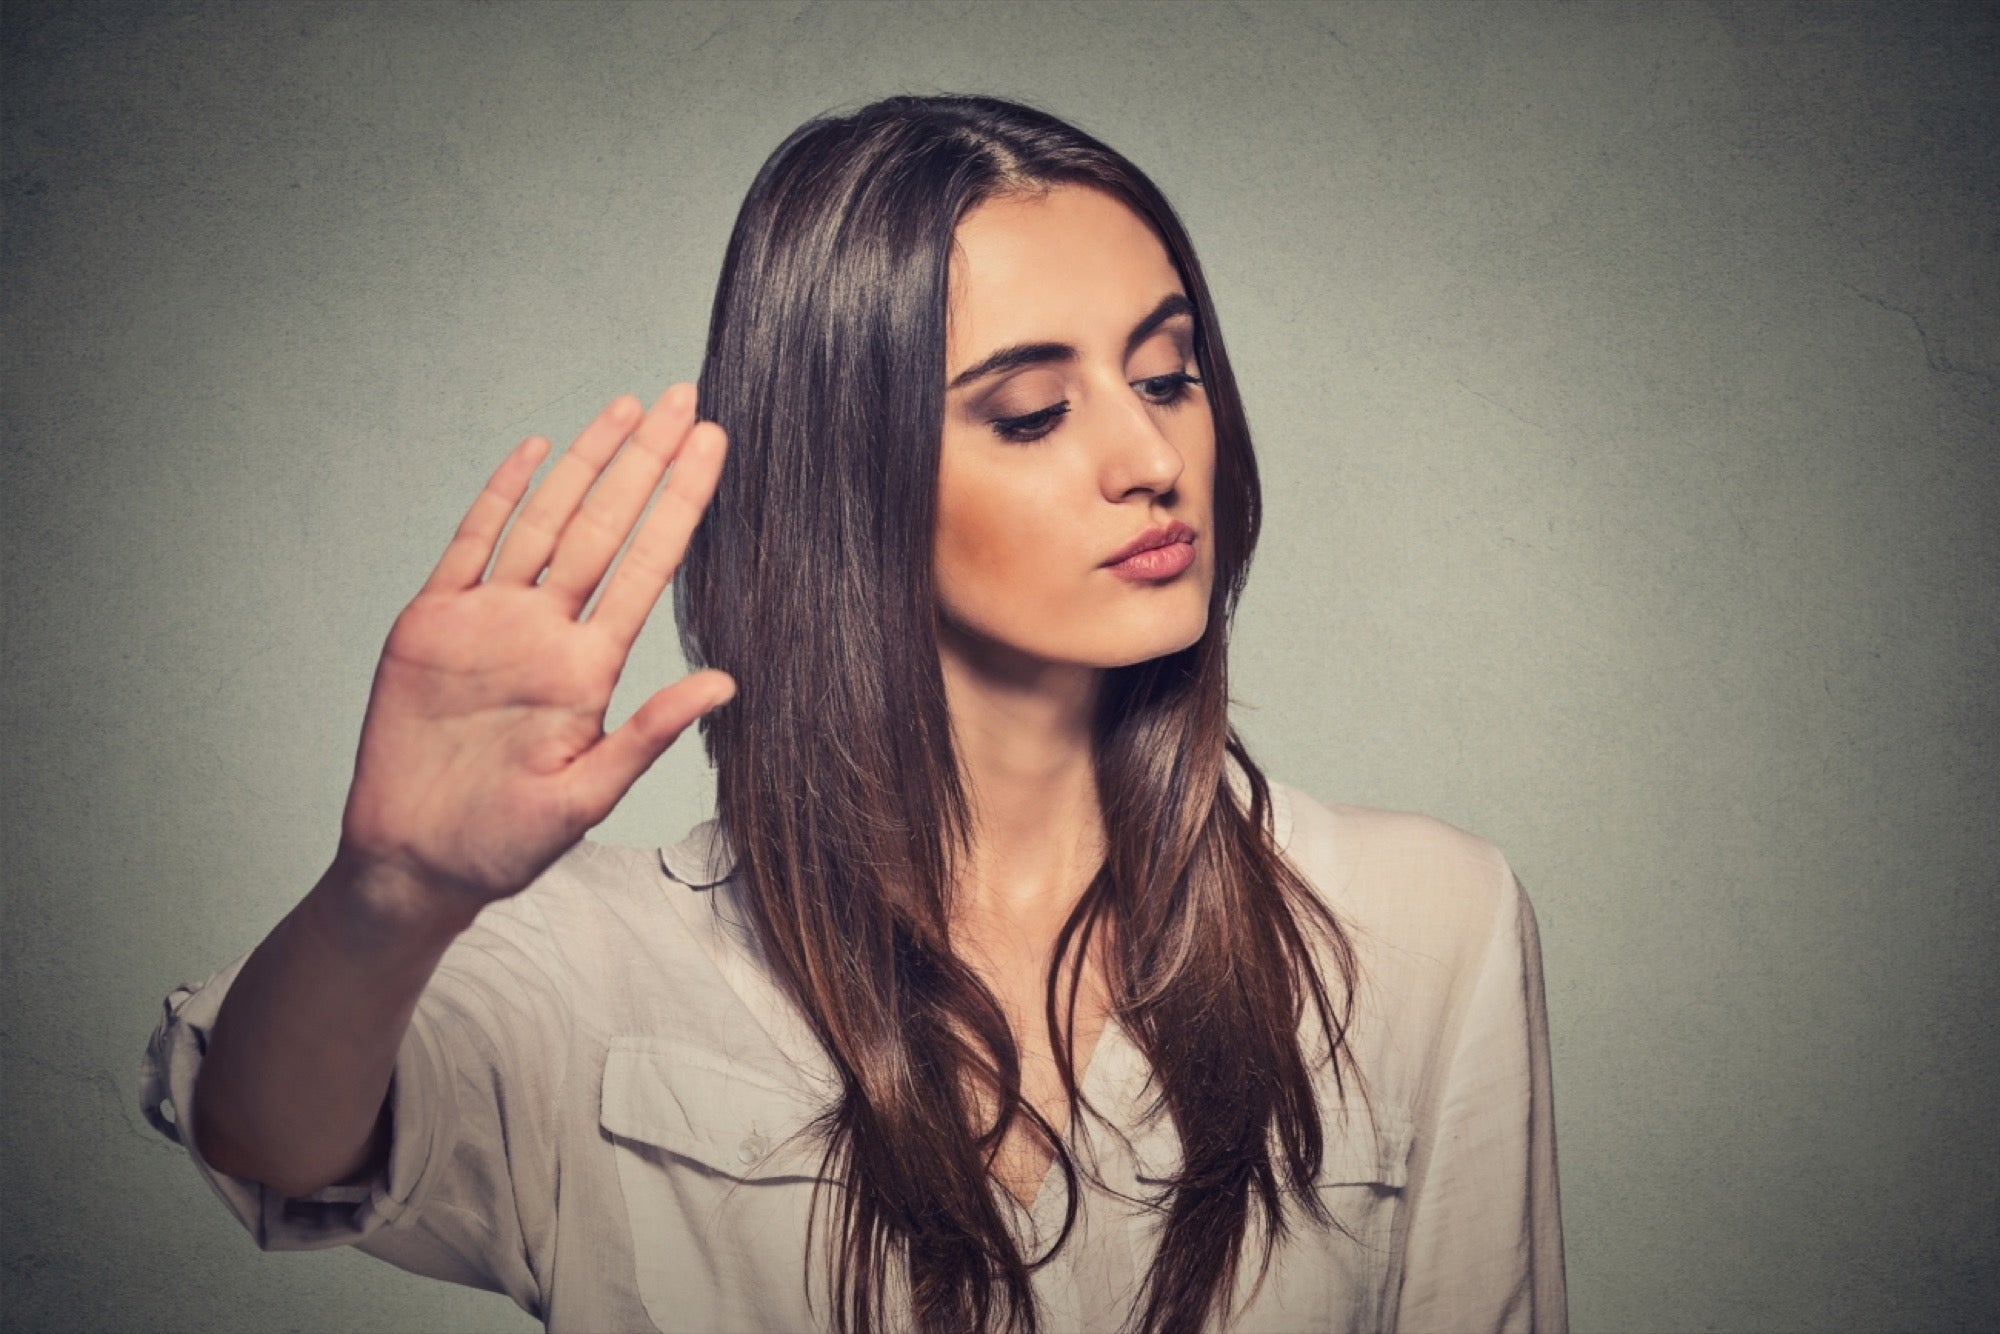 How to Handle the Disgruntled Employee Out to Sabotage Your Business